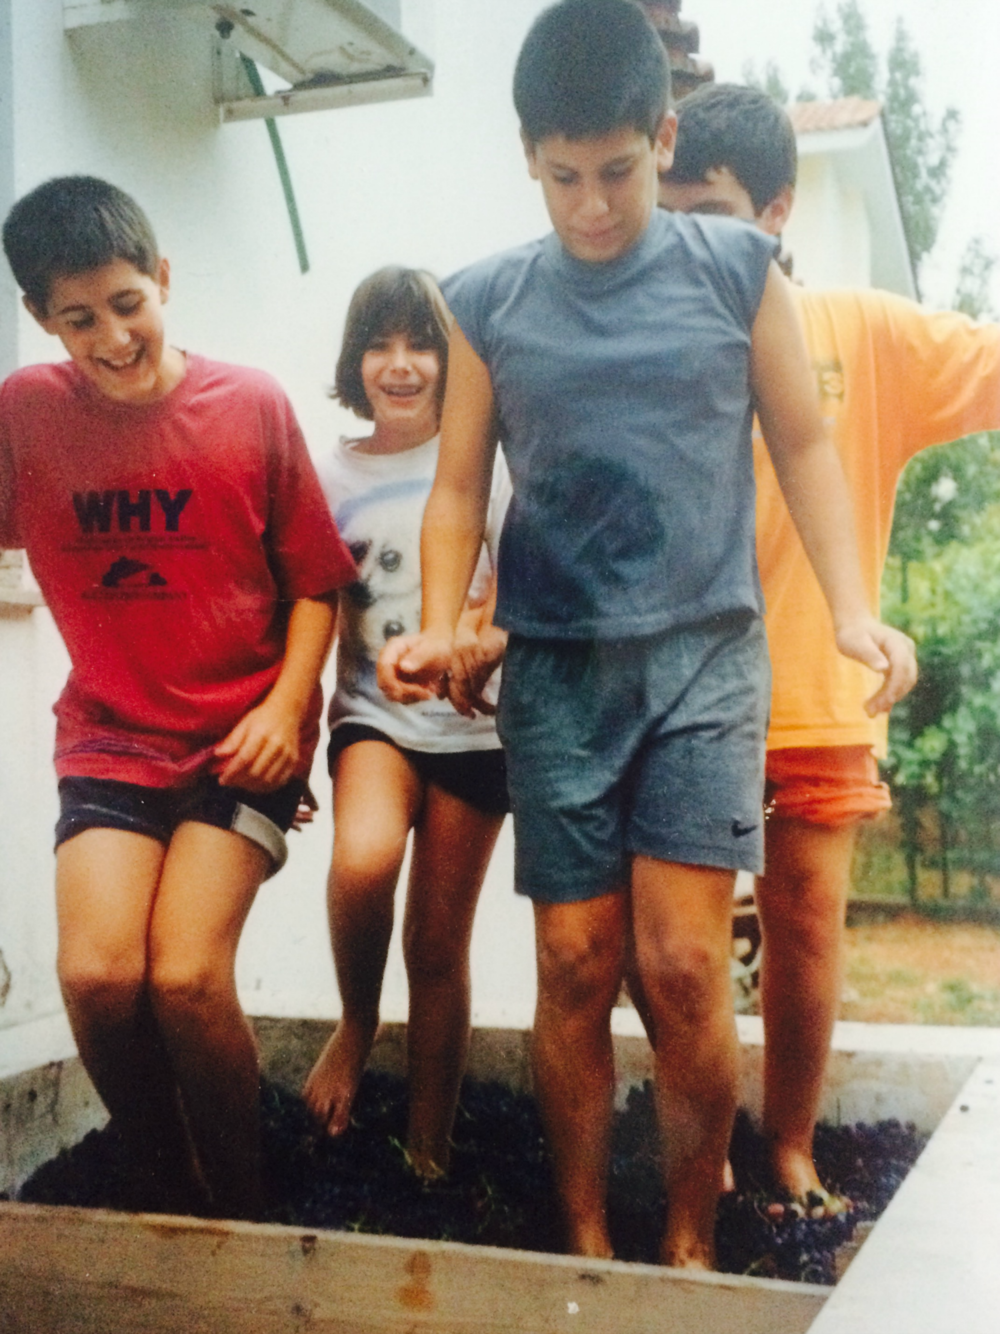 My little brother and his friends pressing the grapes with their feet [September 1998]